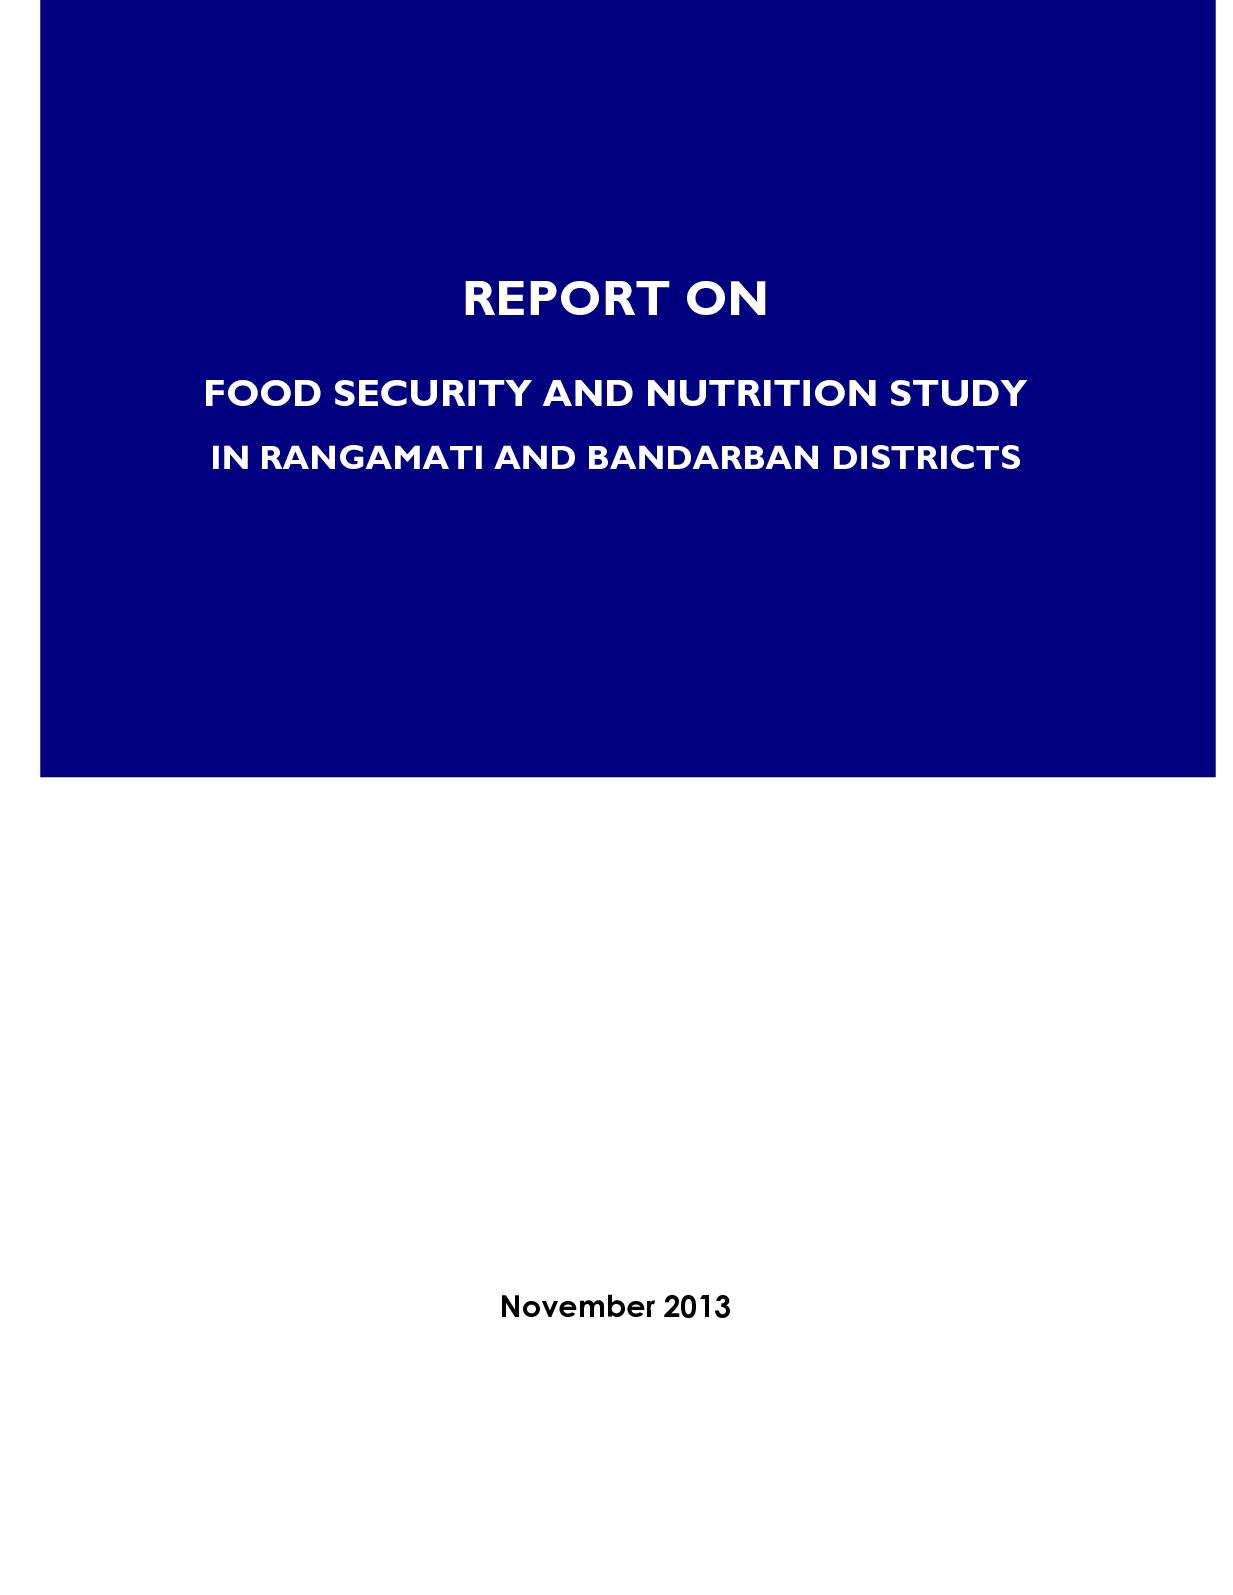 Cht Food And Nutritional Security Study